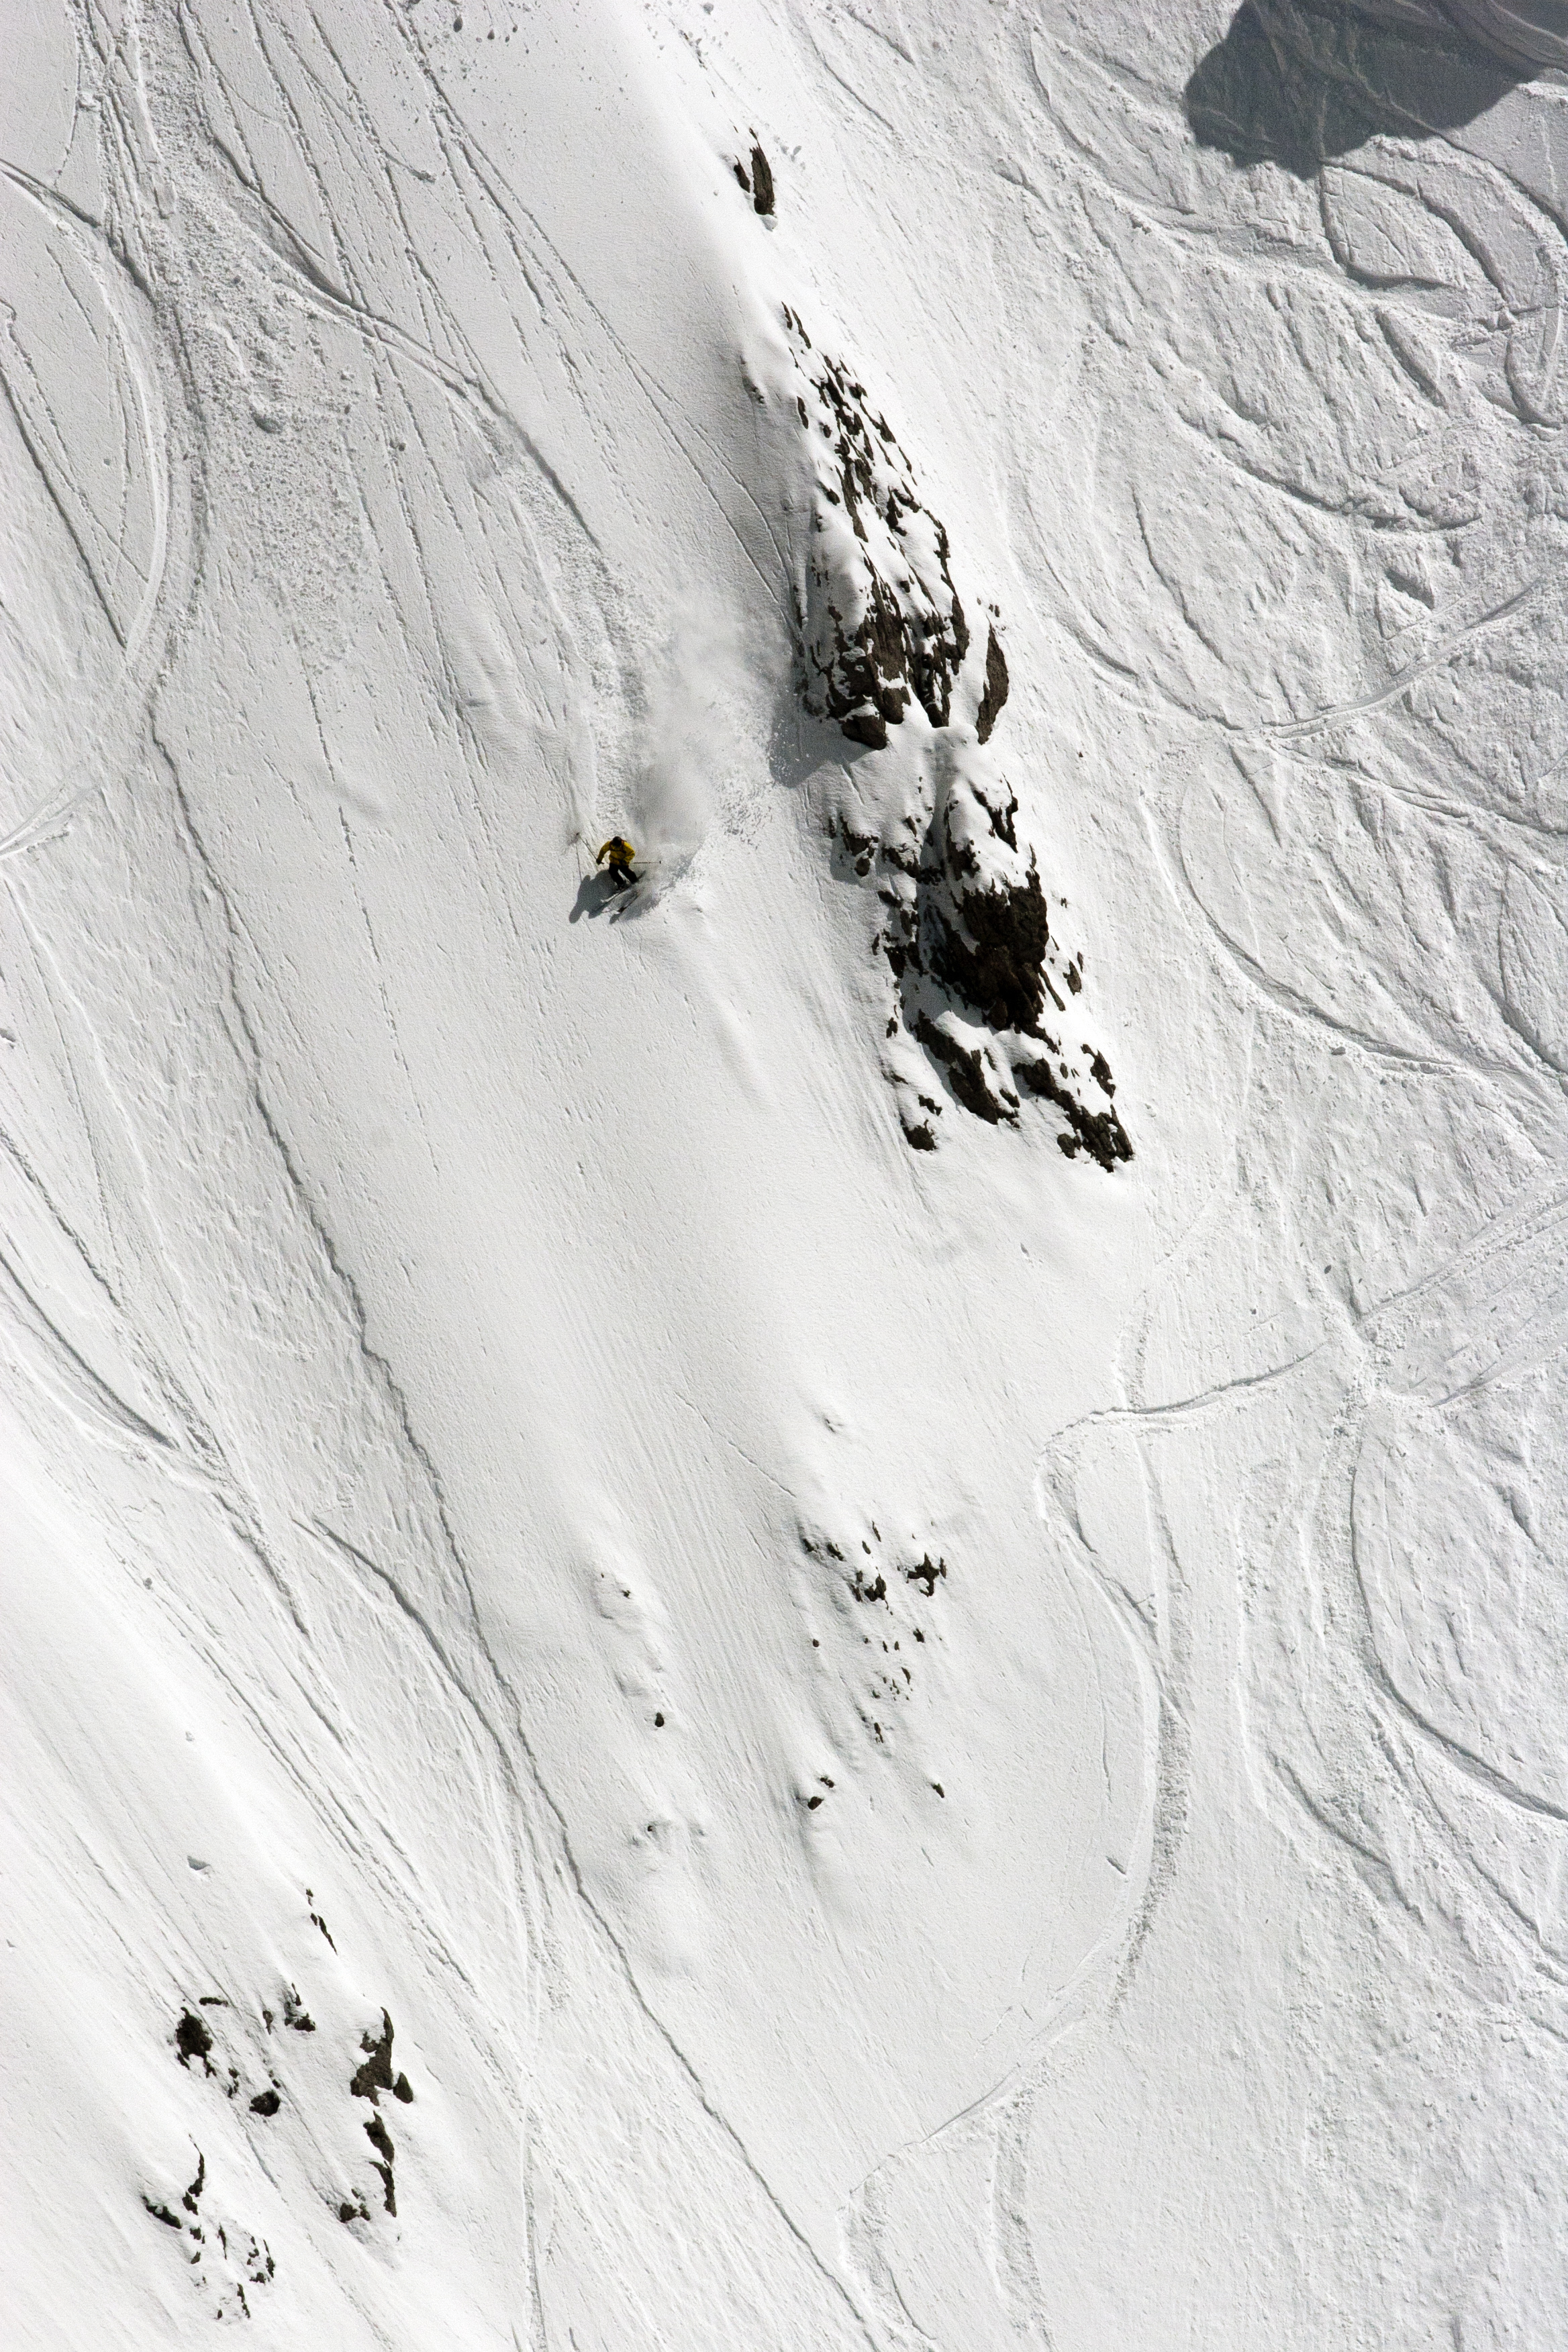 Untracked face